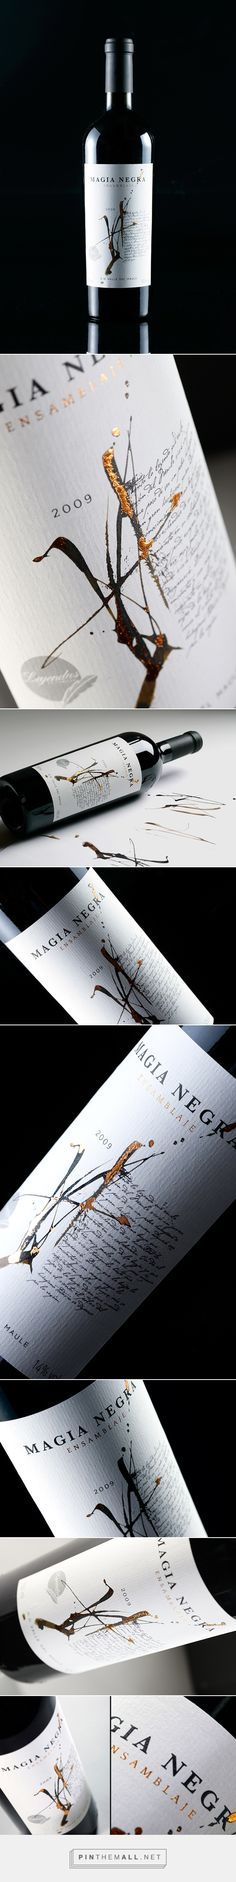 Magia Negra Wine Label by Labdiseño Chile